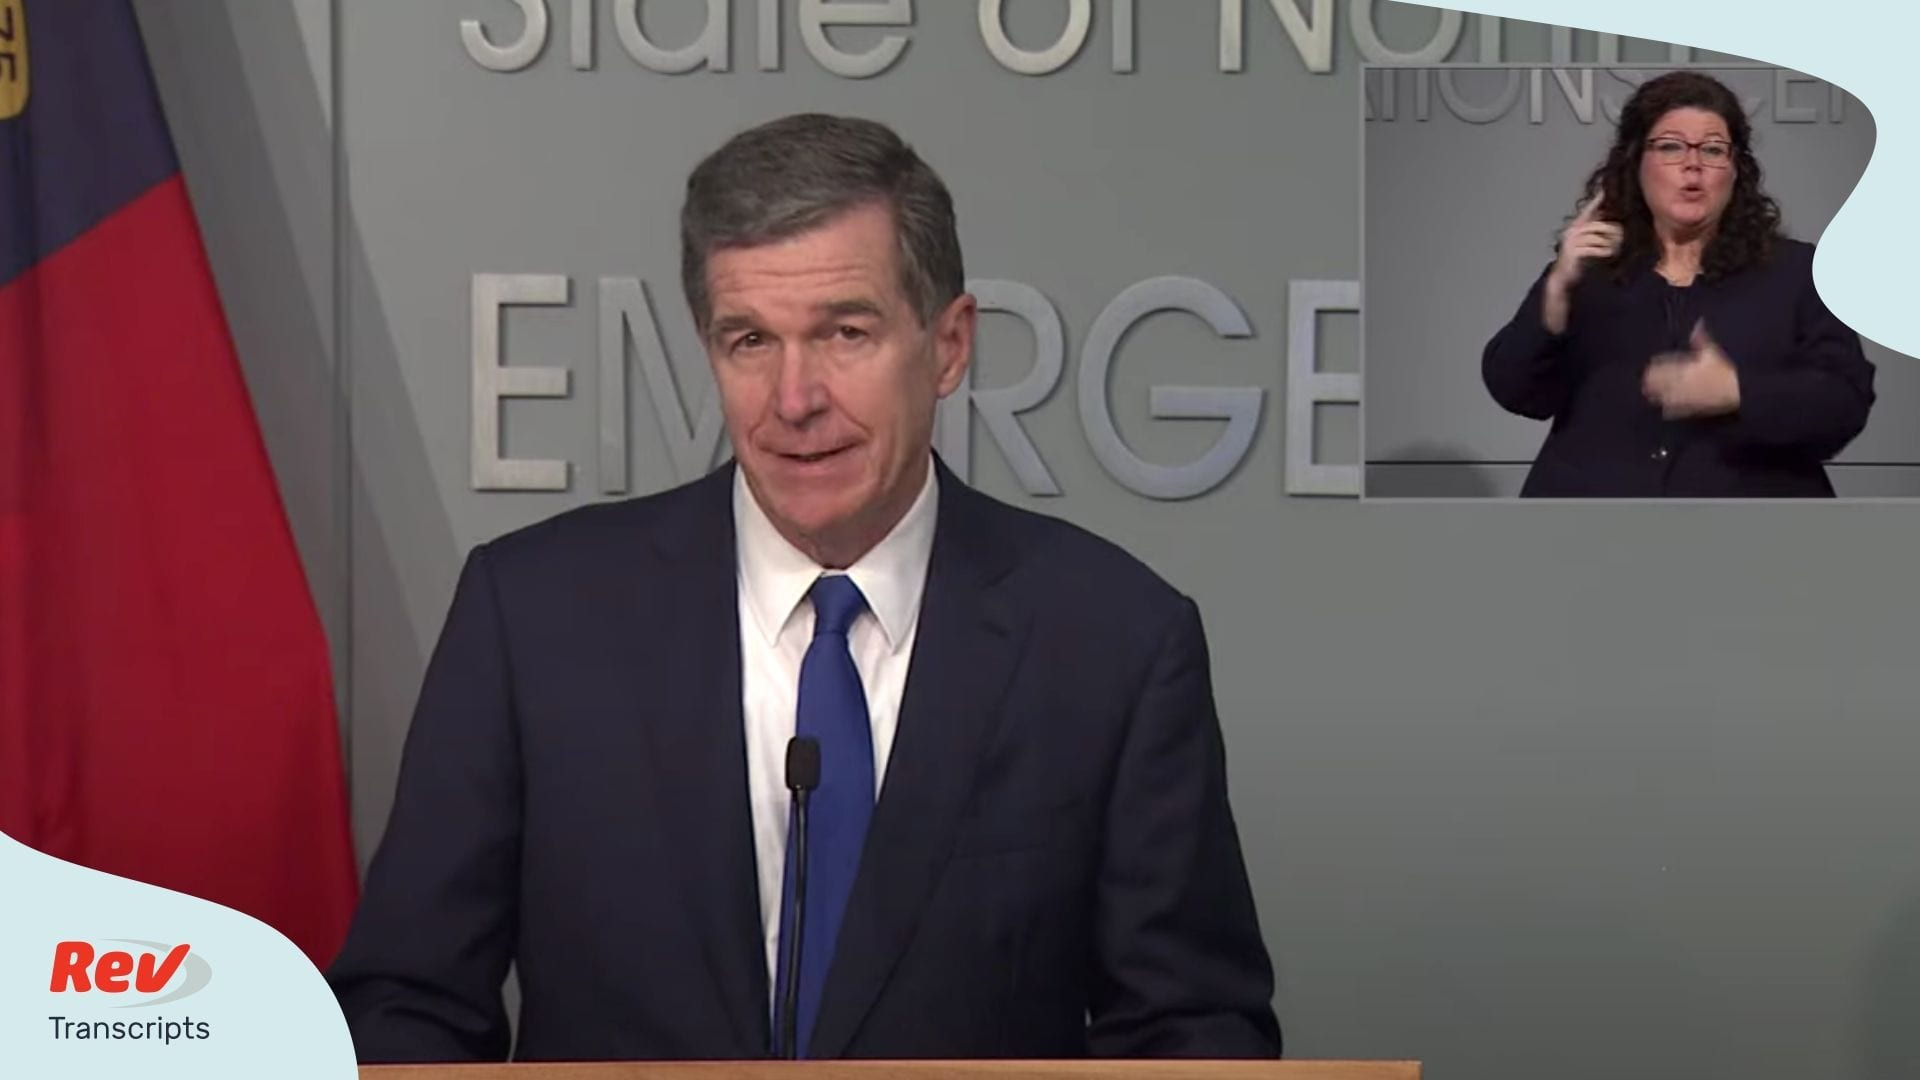 NC Governor Roy Cooper Press Conference June 24